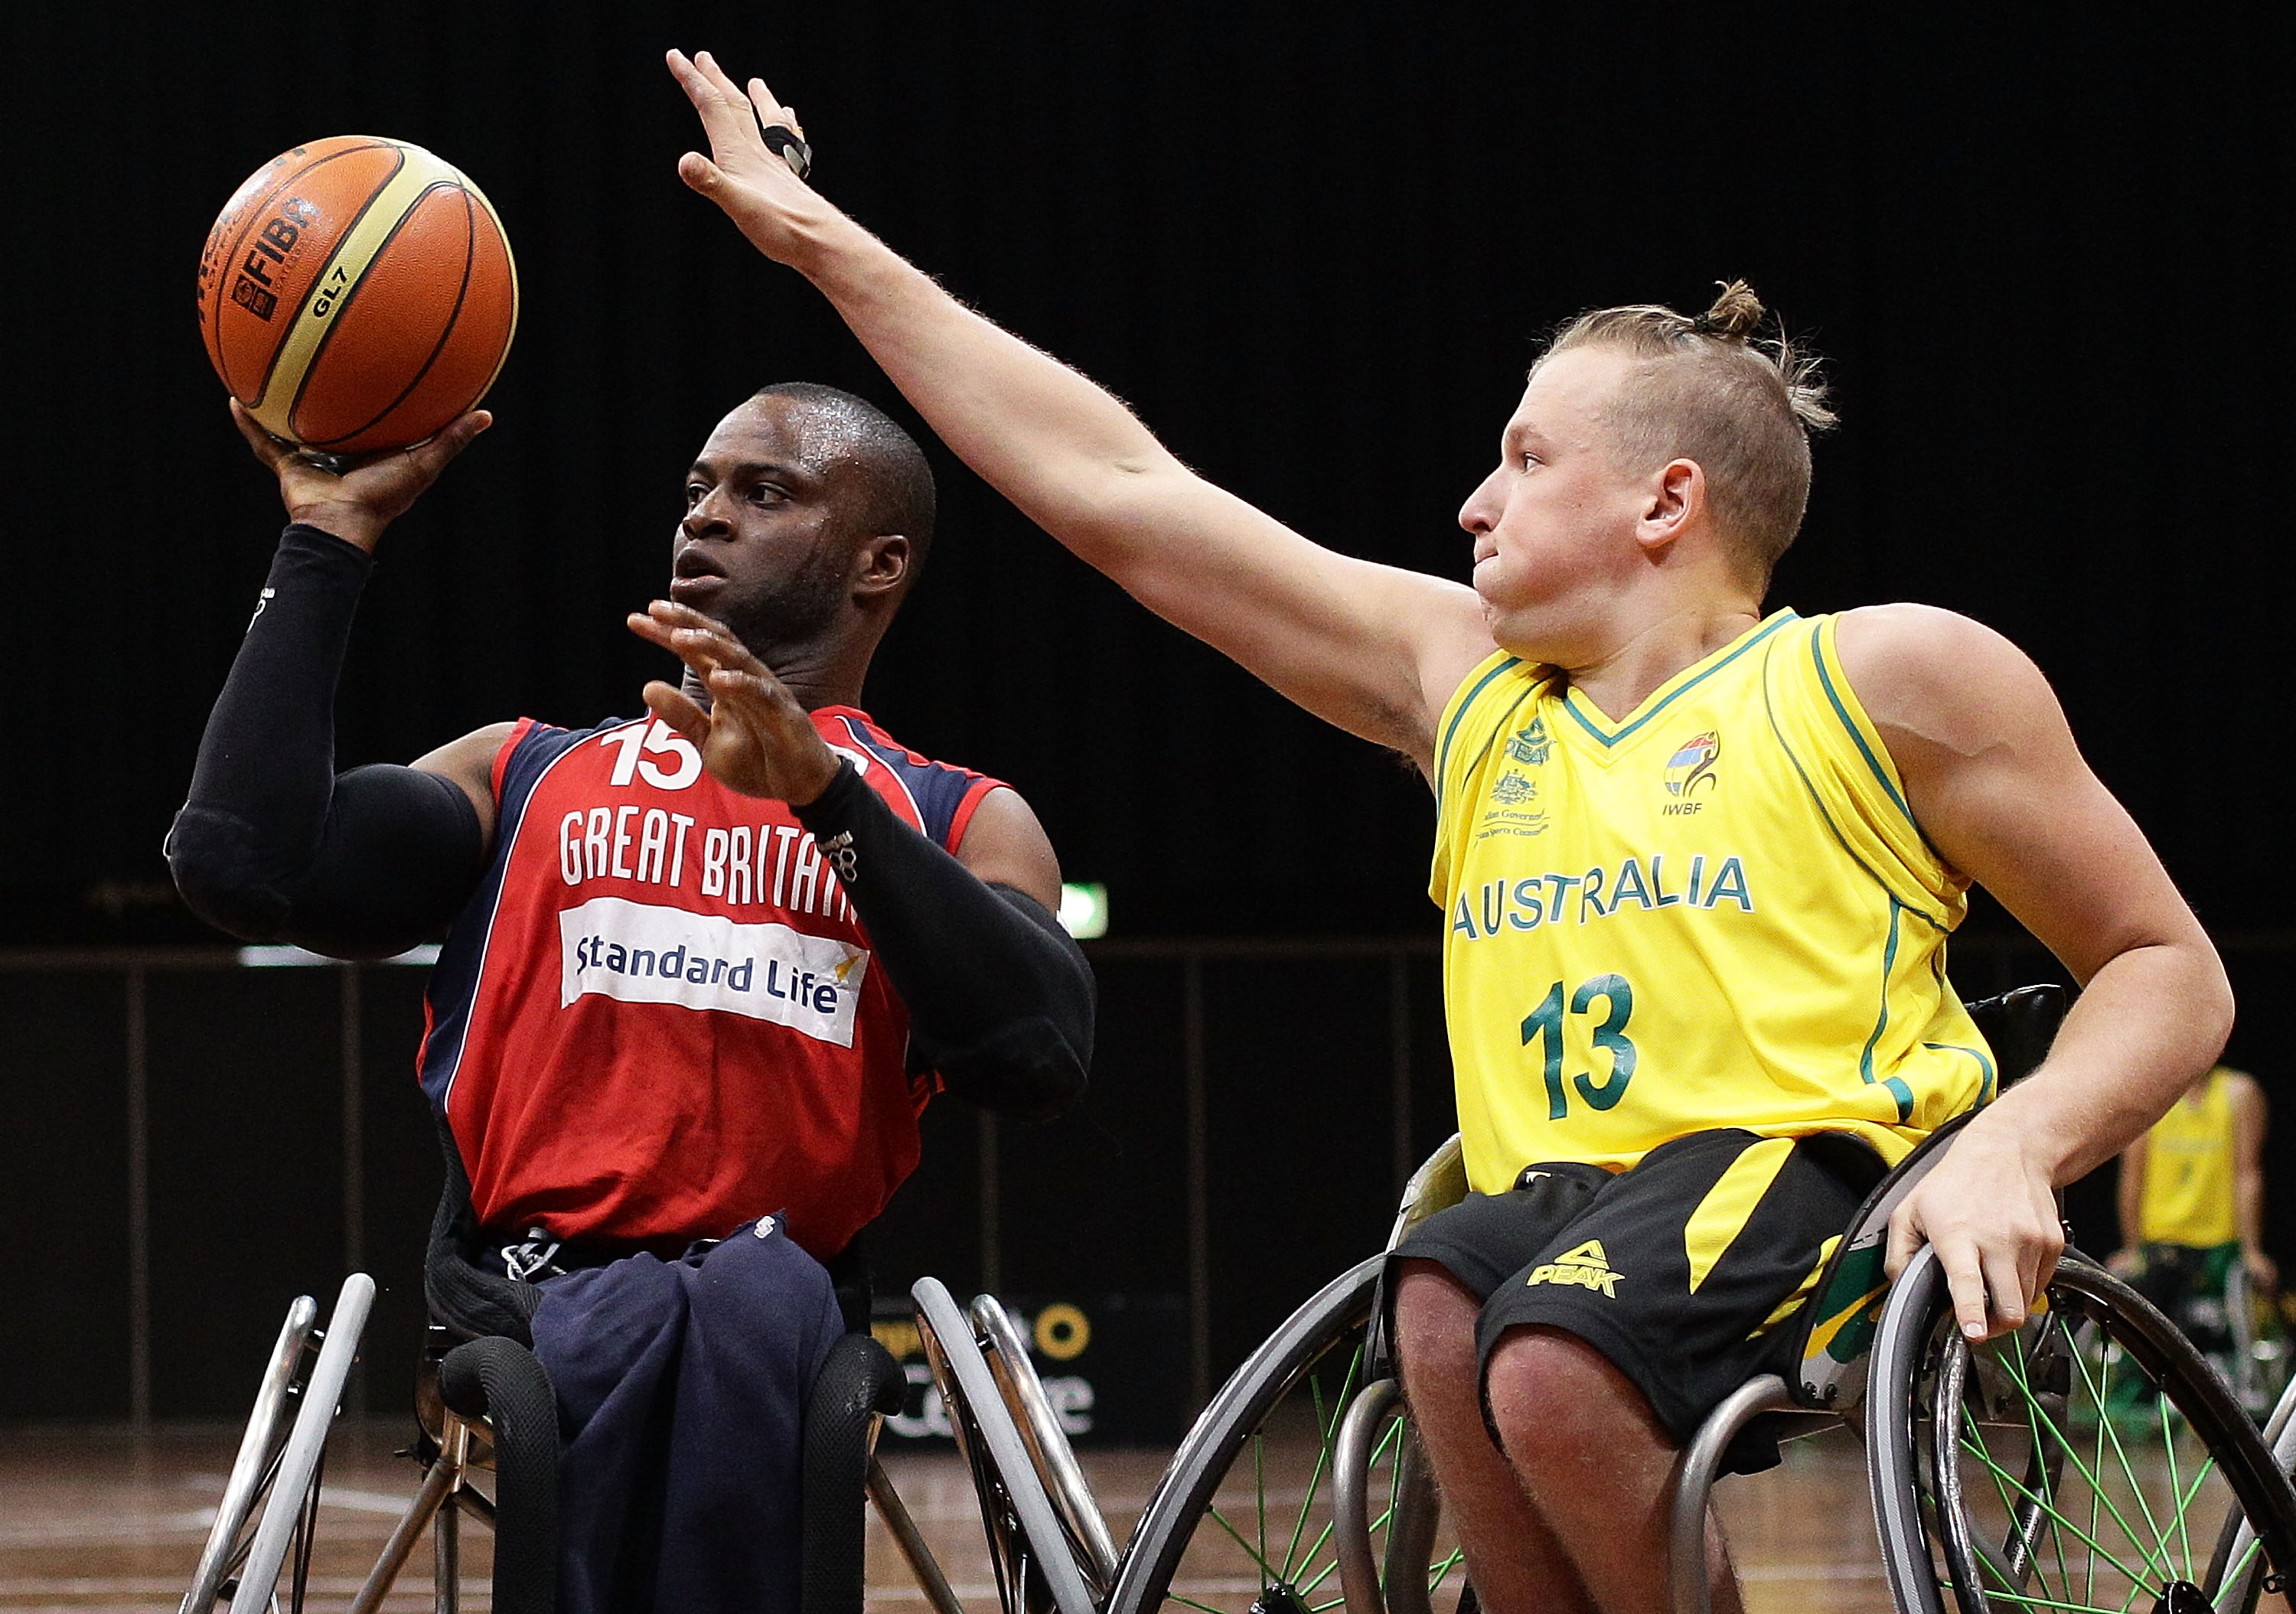 Paralympic Athlete Wins Gold In Two Completely Different Sports GettyImages 148497119